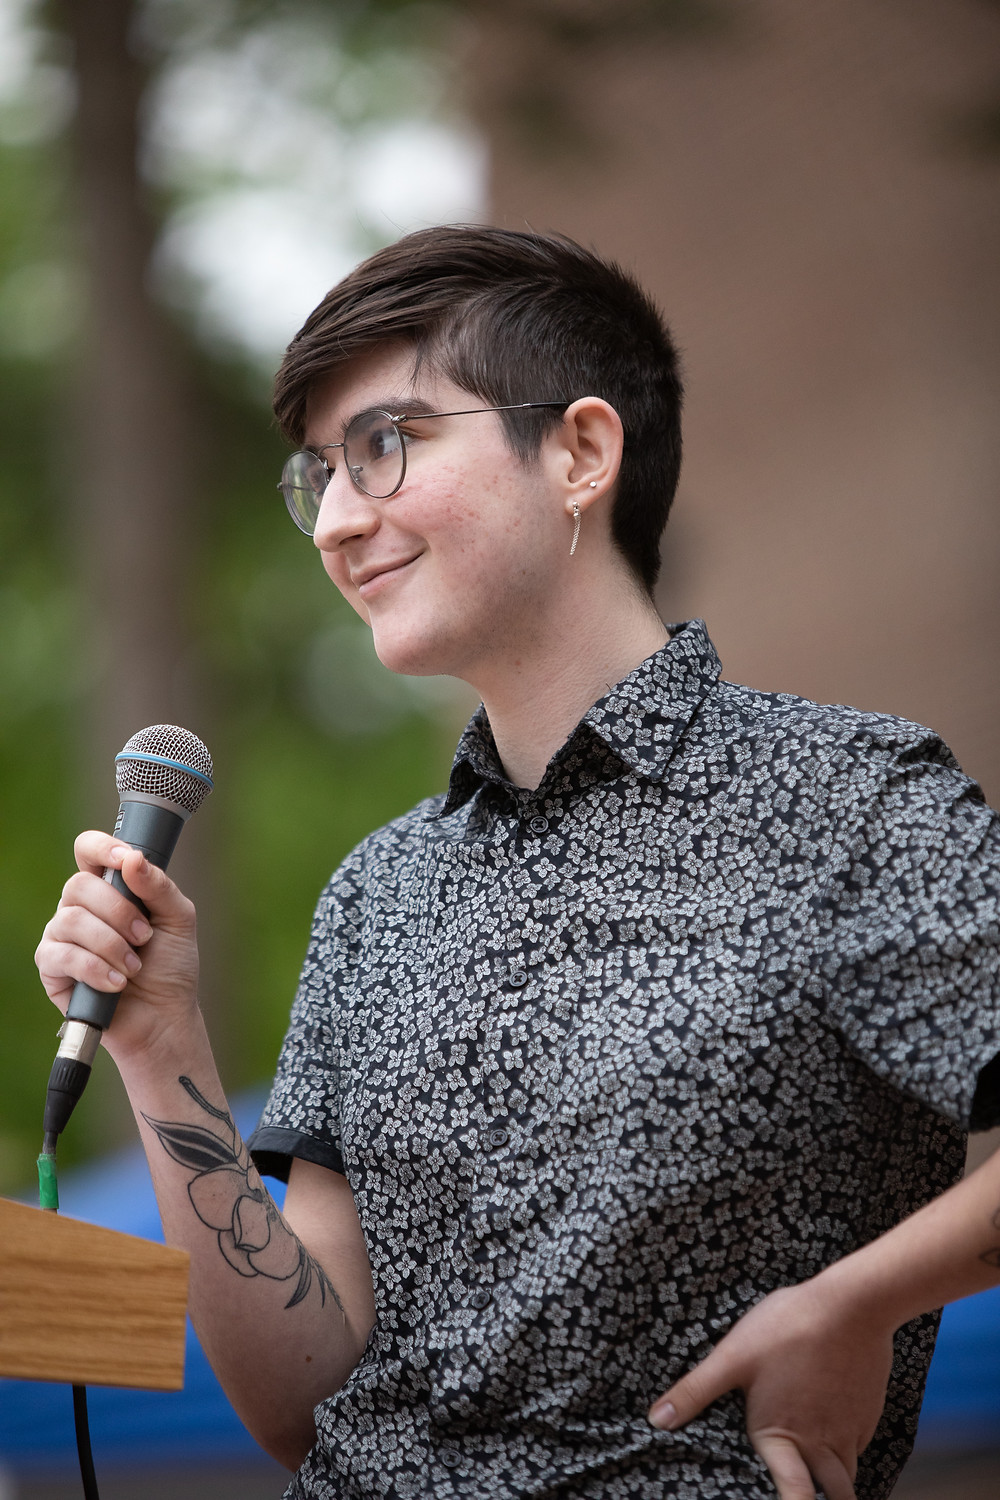 Hayden Troup speaking at the Stop the Bans rally in Ann Arbor on May 21, 2019.